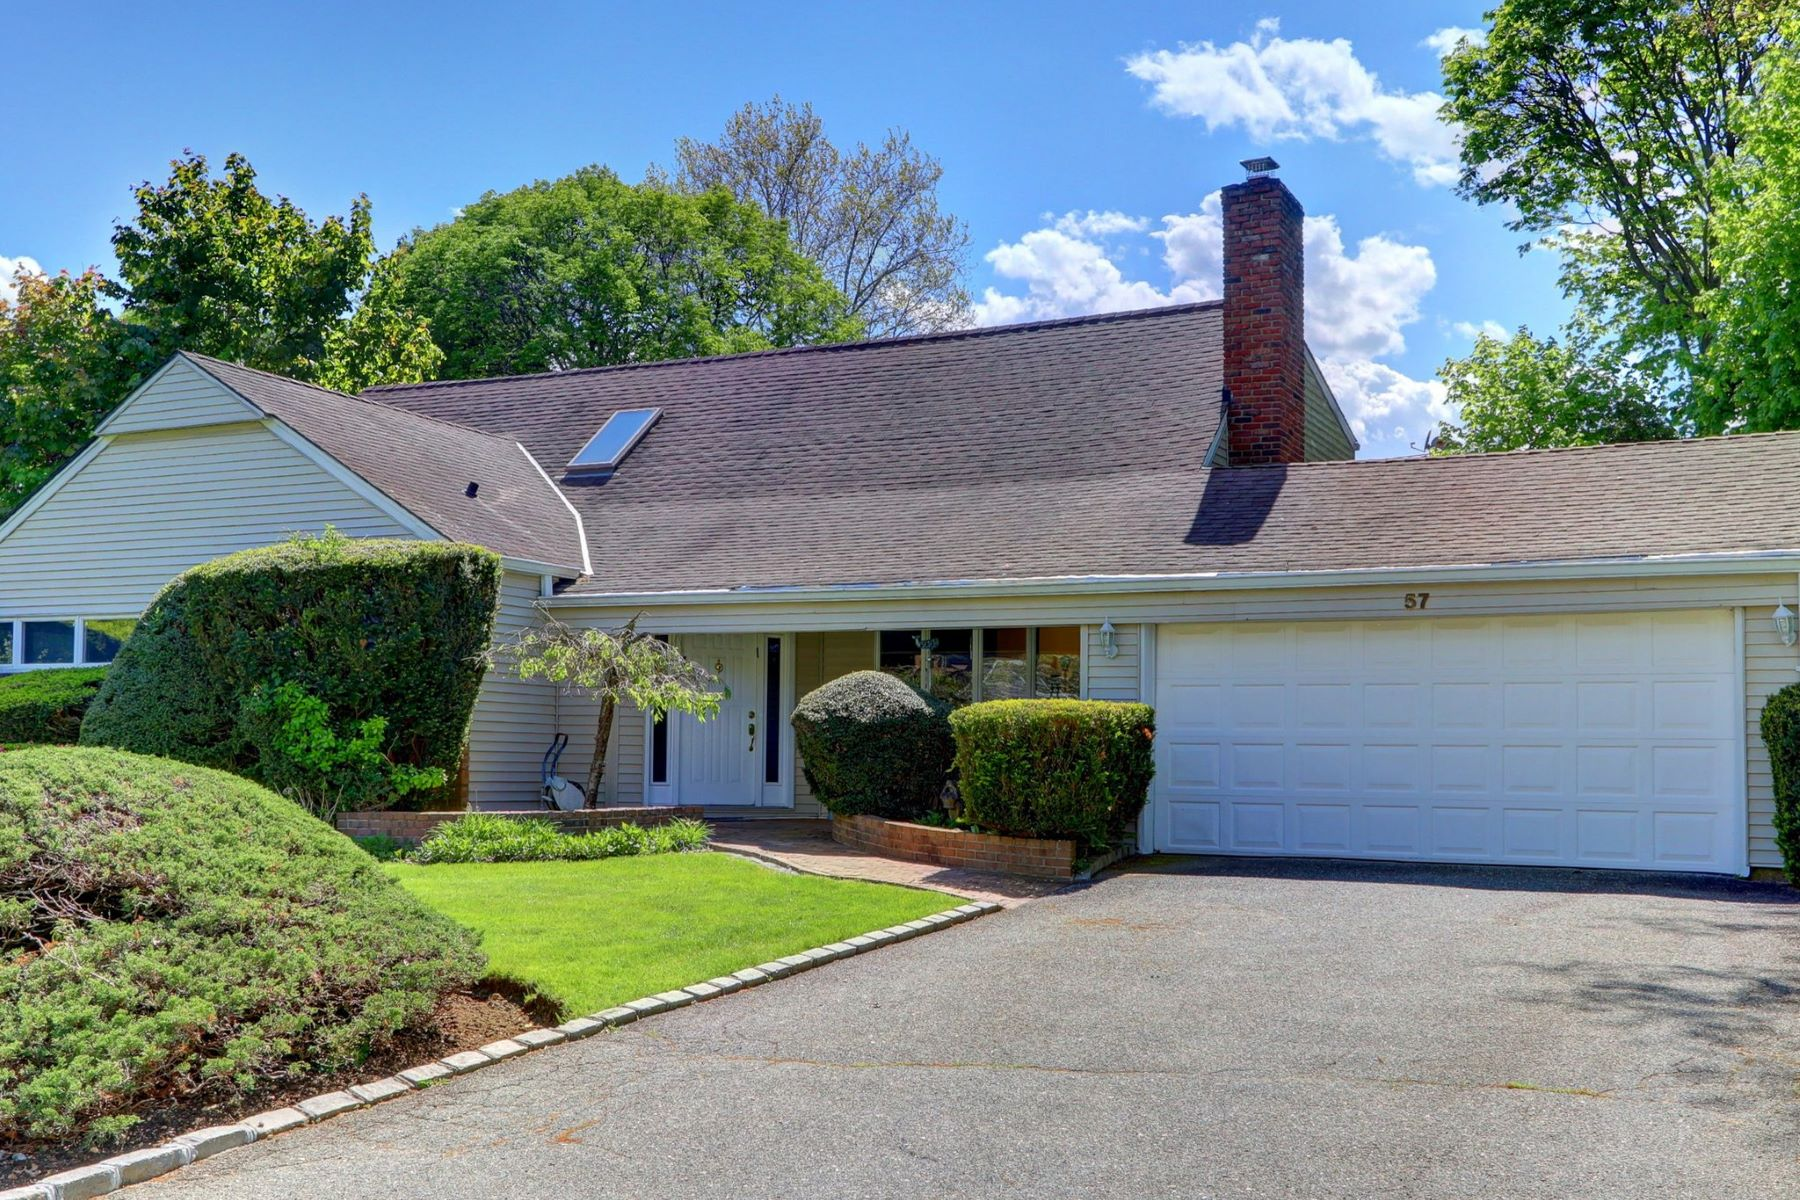 Single Family Homes for Active at East Hills 57 Arbor Rd East Hills, New York 11577 United States